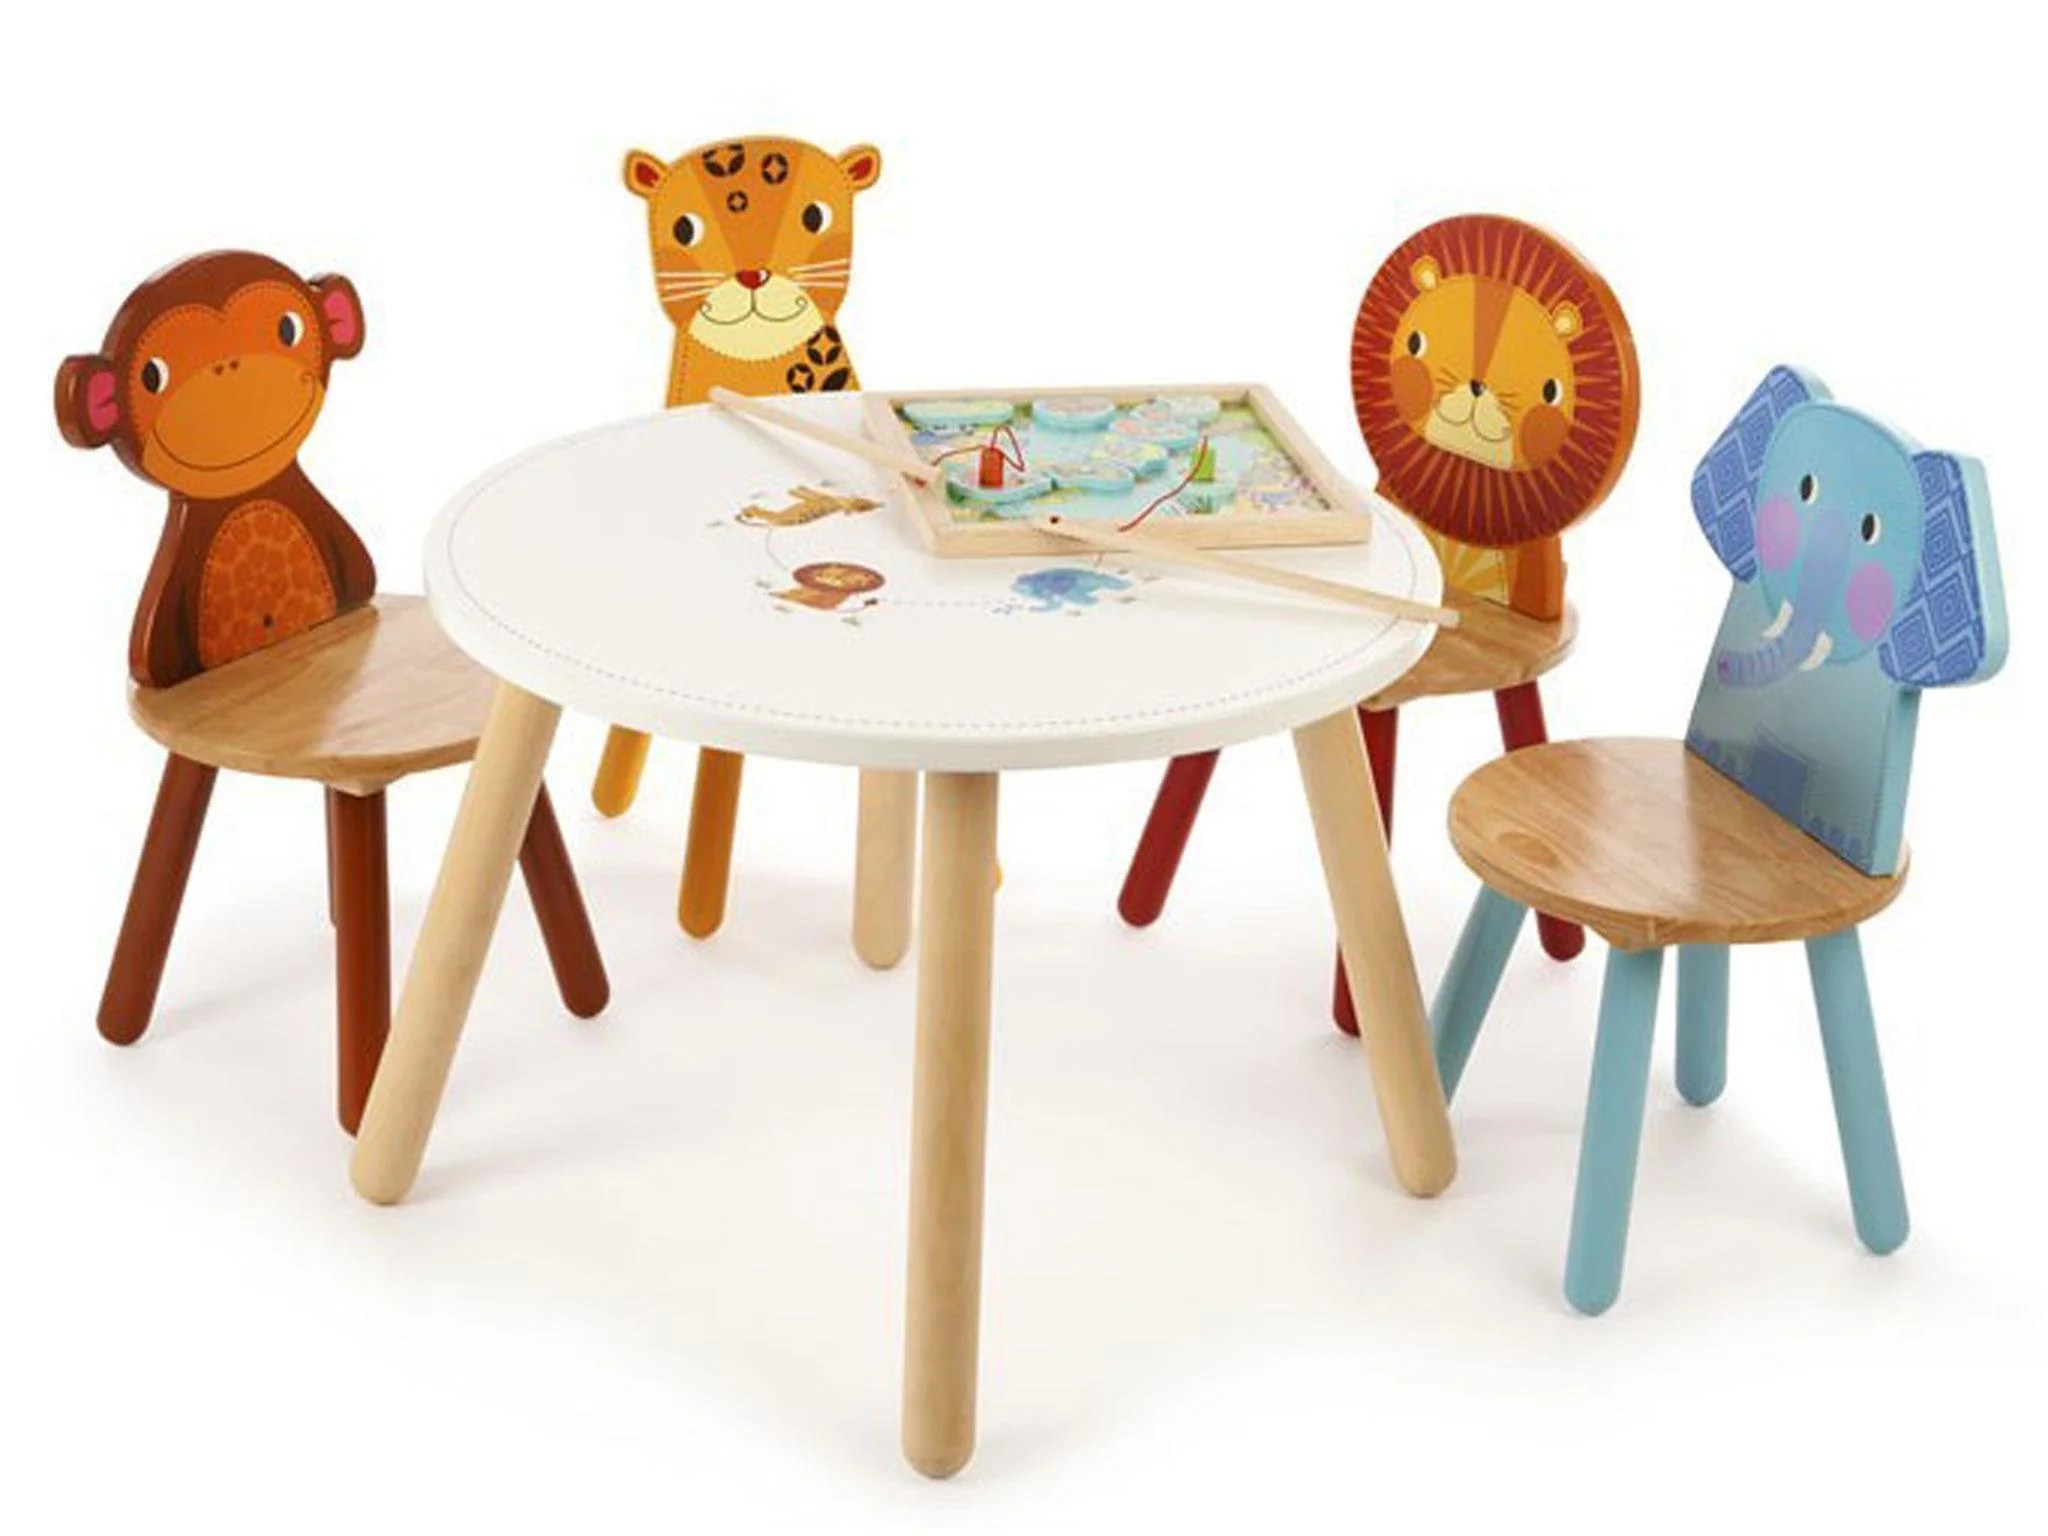 toddler chair and table for eating small chairs kitchen uk 10 best kids tables the independent tidlo jungle animal four 139 99 gulliverstoys co